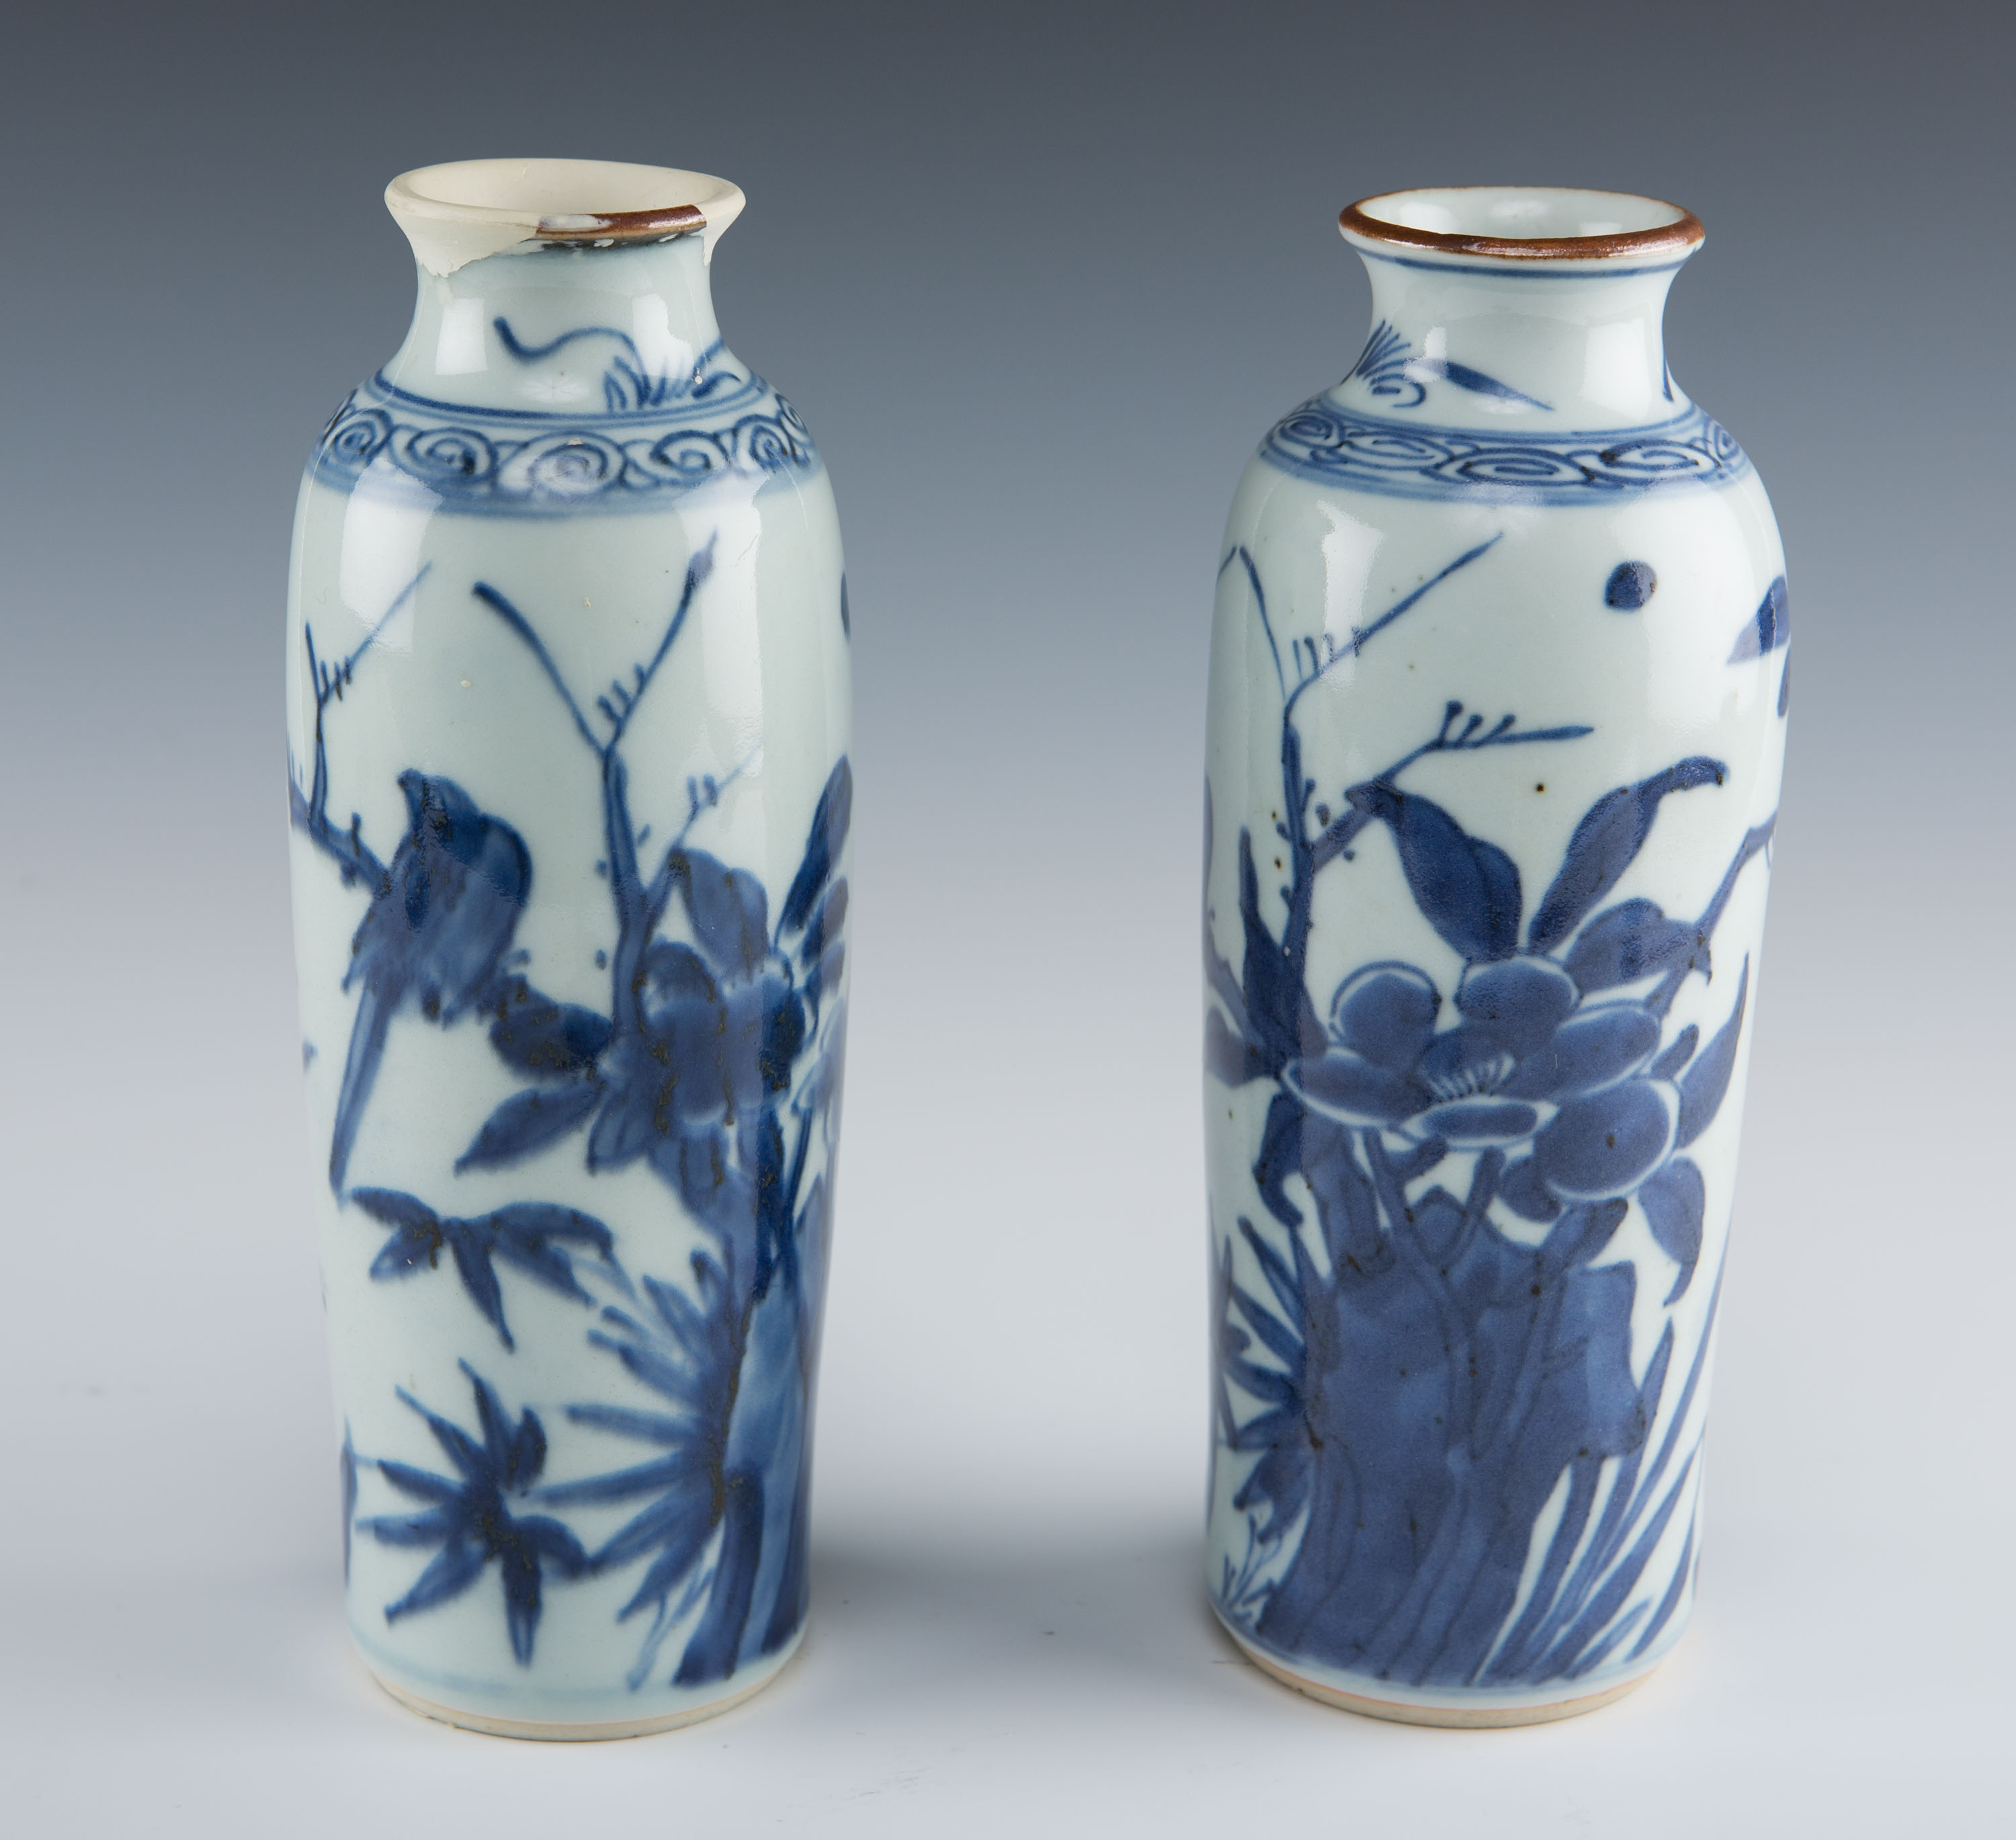 A pair of small blue and white Rollwagon sleeve vases, Chinese Transitional, circa 1650/60.